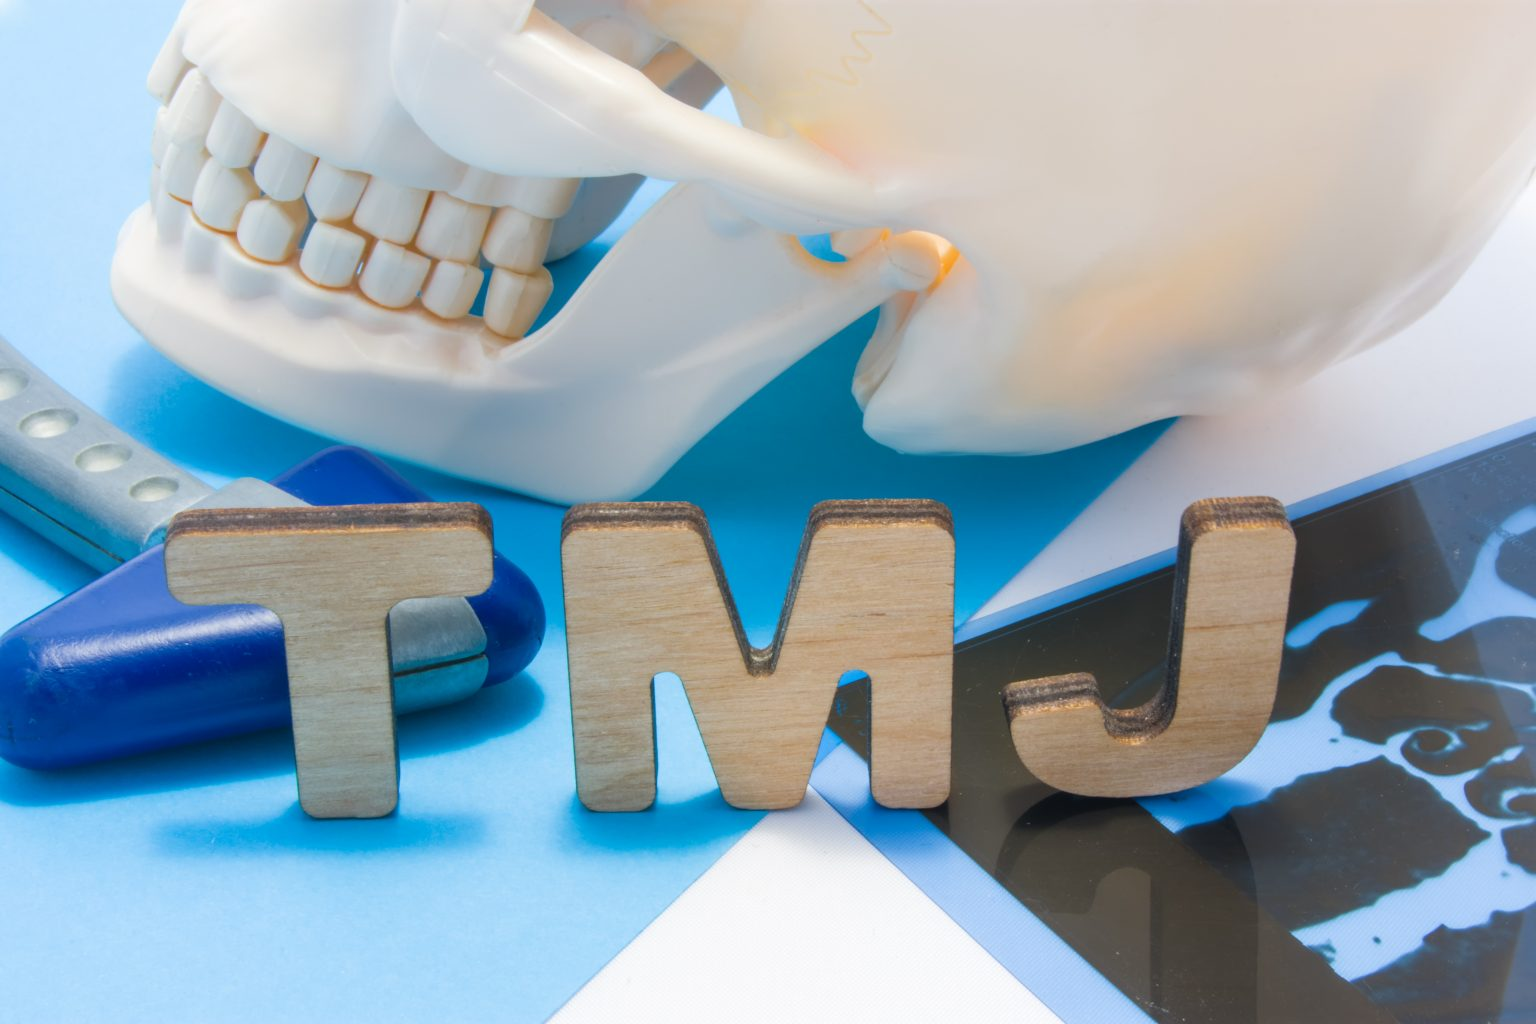 Tmj Medical Abbreviation Of Temporomandibular Joint. Tmj Letters Surrounded By Human Skull With Lower Jaw, Neurological Hammer And Radiographs. Concept Of Anatomy, Pathology Of Temporomandibular Joint